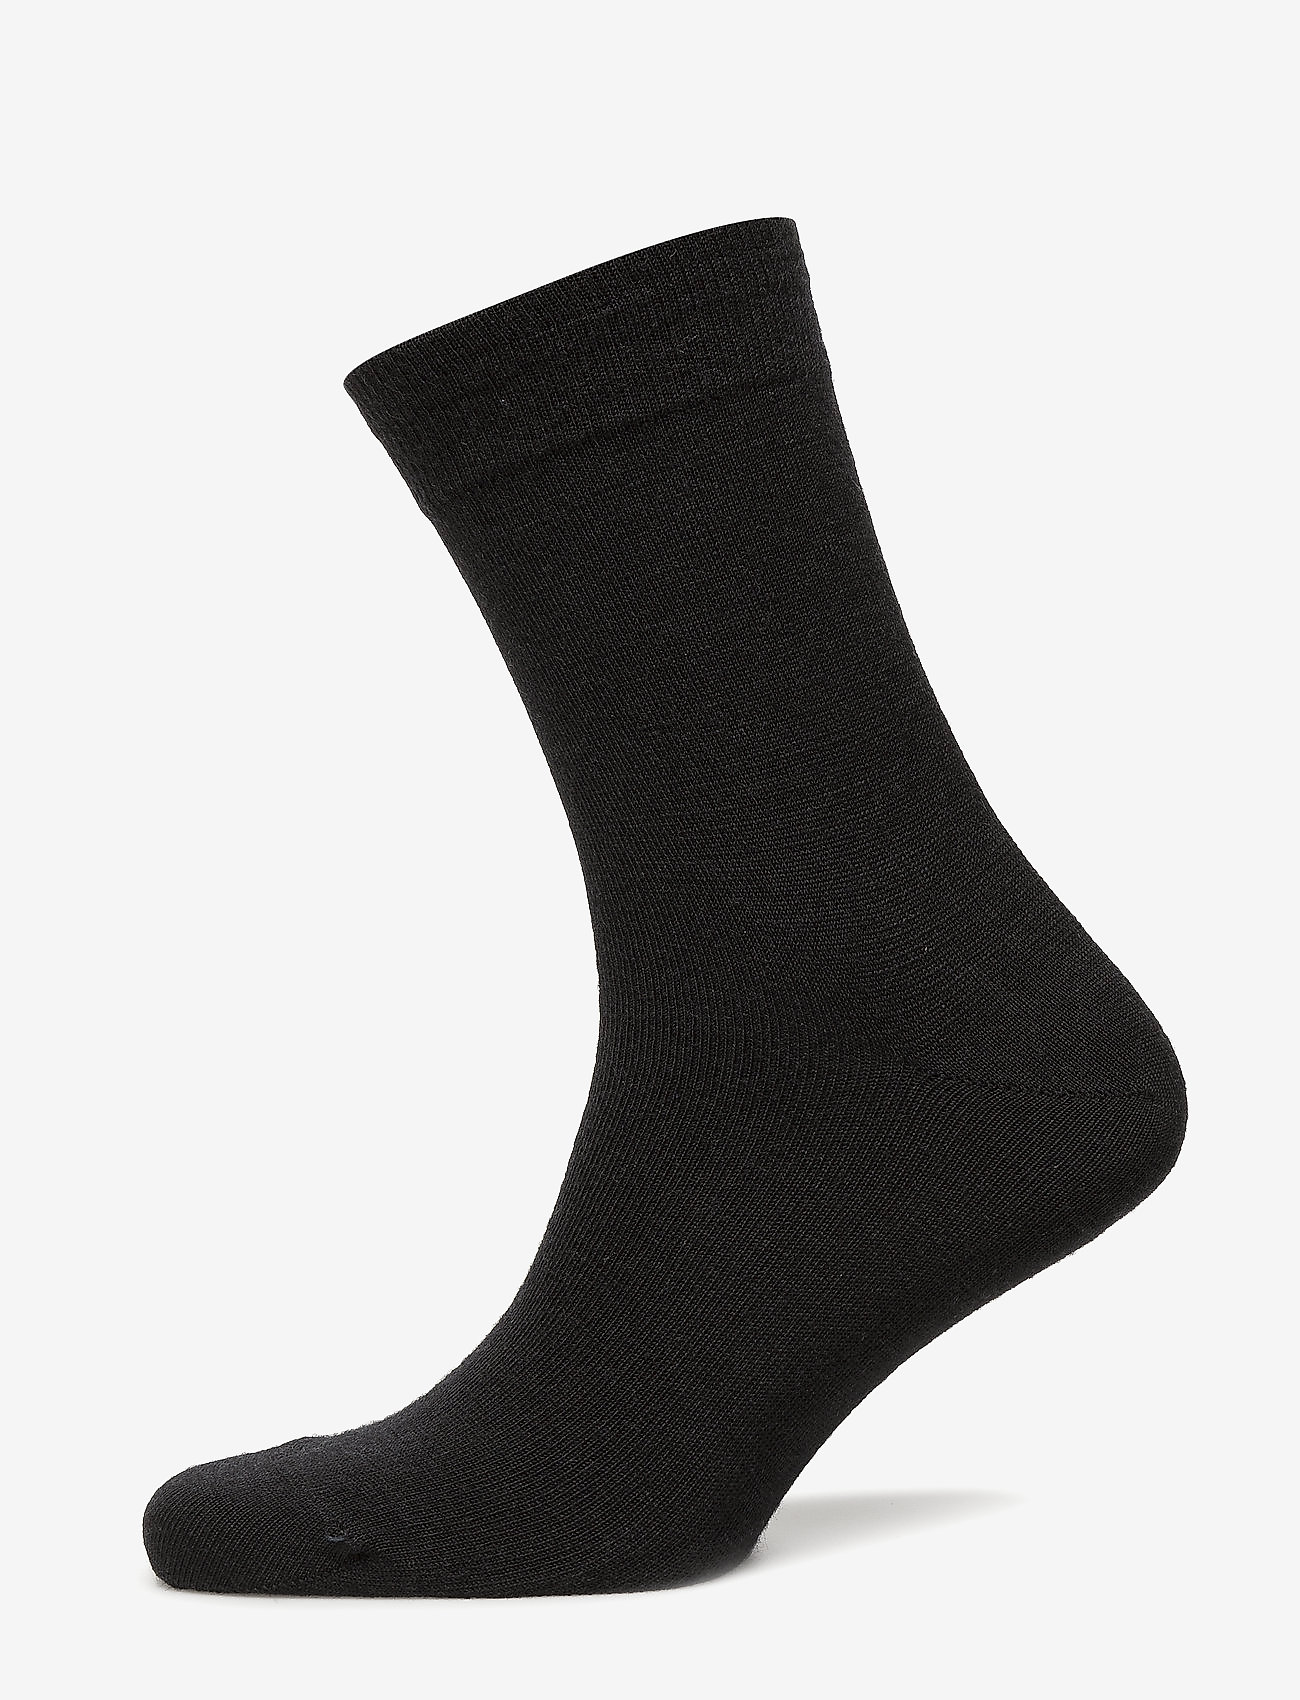 Egtved - Egtved business socks - tavalliset sukat - black - 0